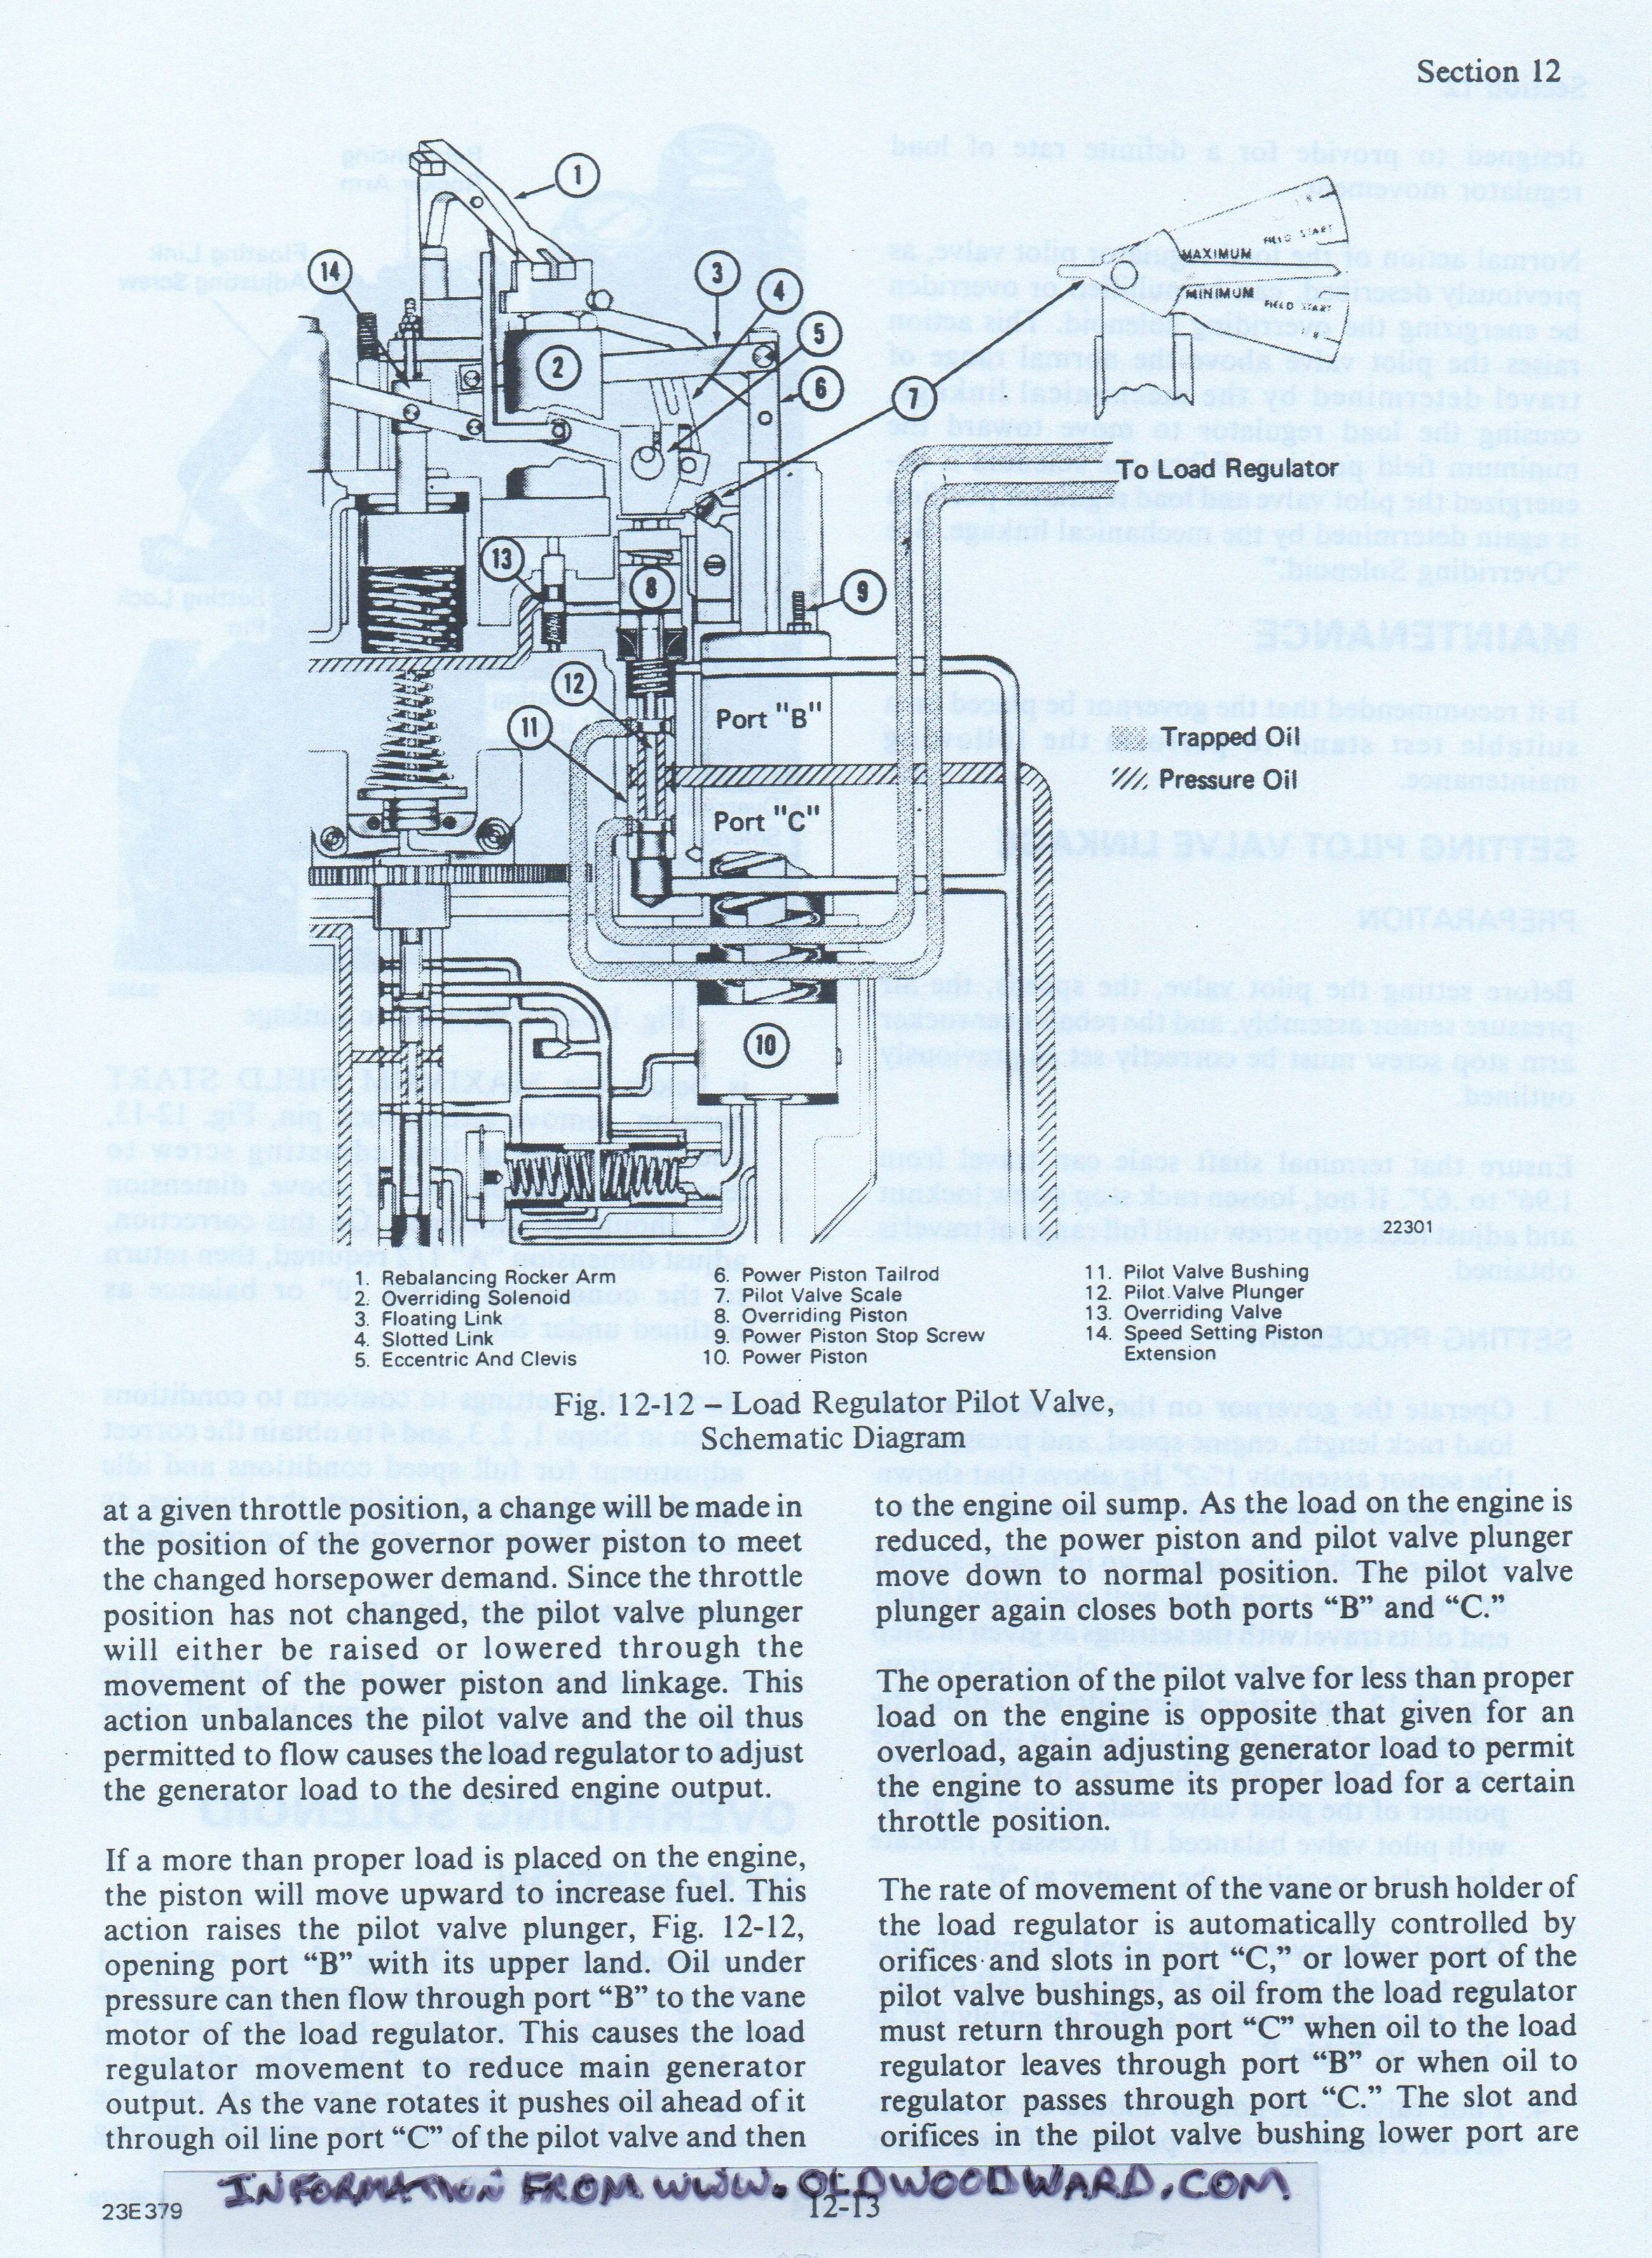 Another schematic from an EMD diesel engine operating manual showing ...